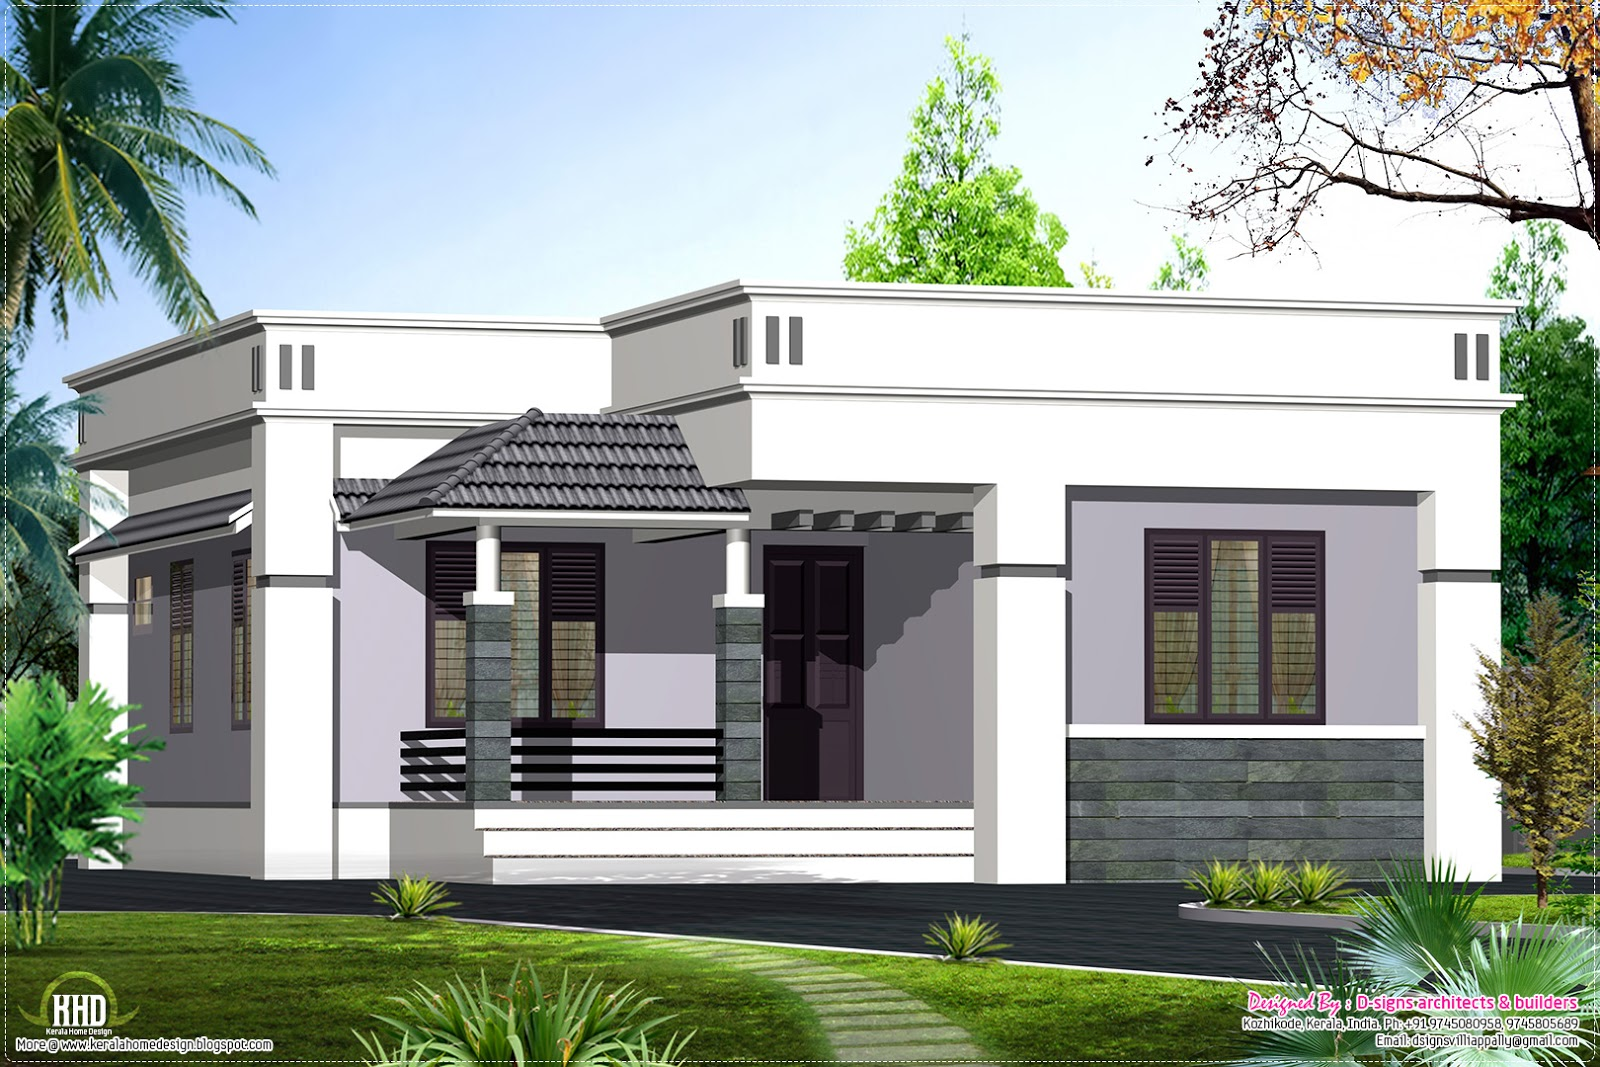 different house plans designs together with house plans kerala home design as well single floor house